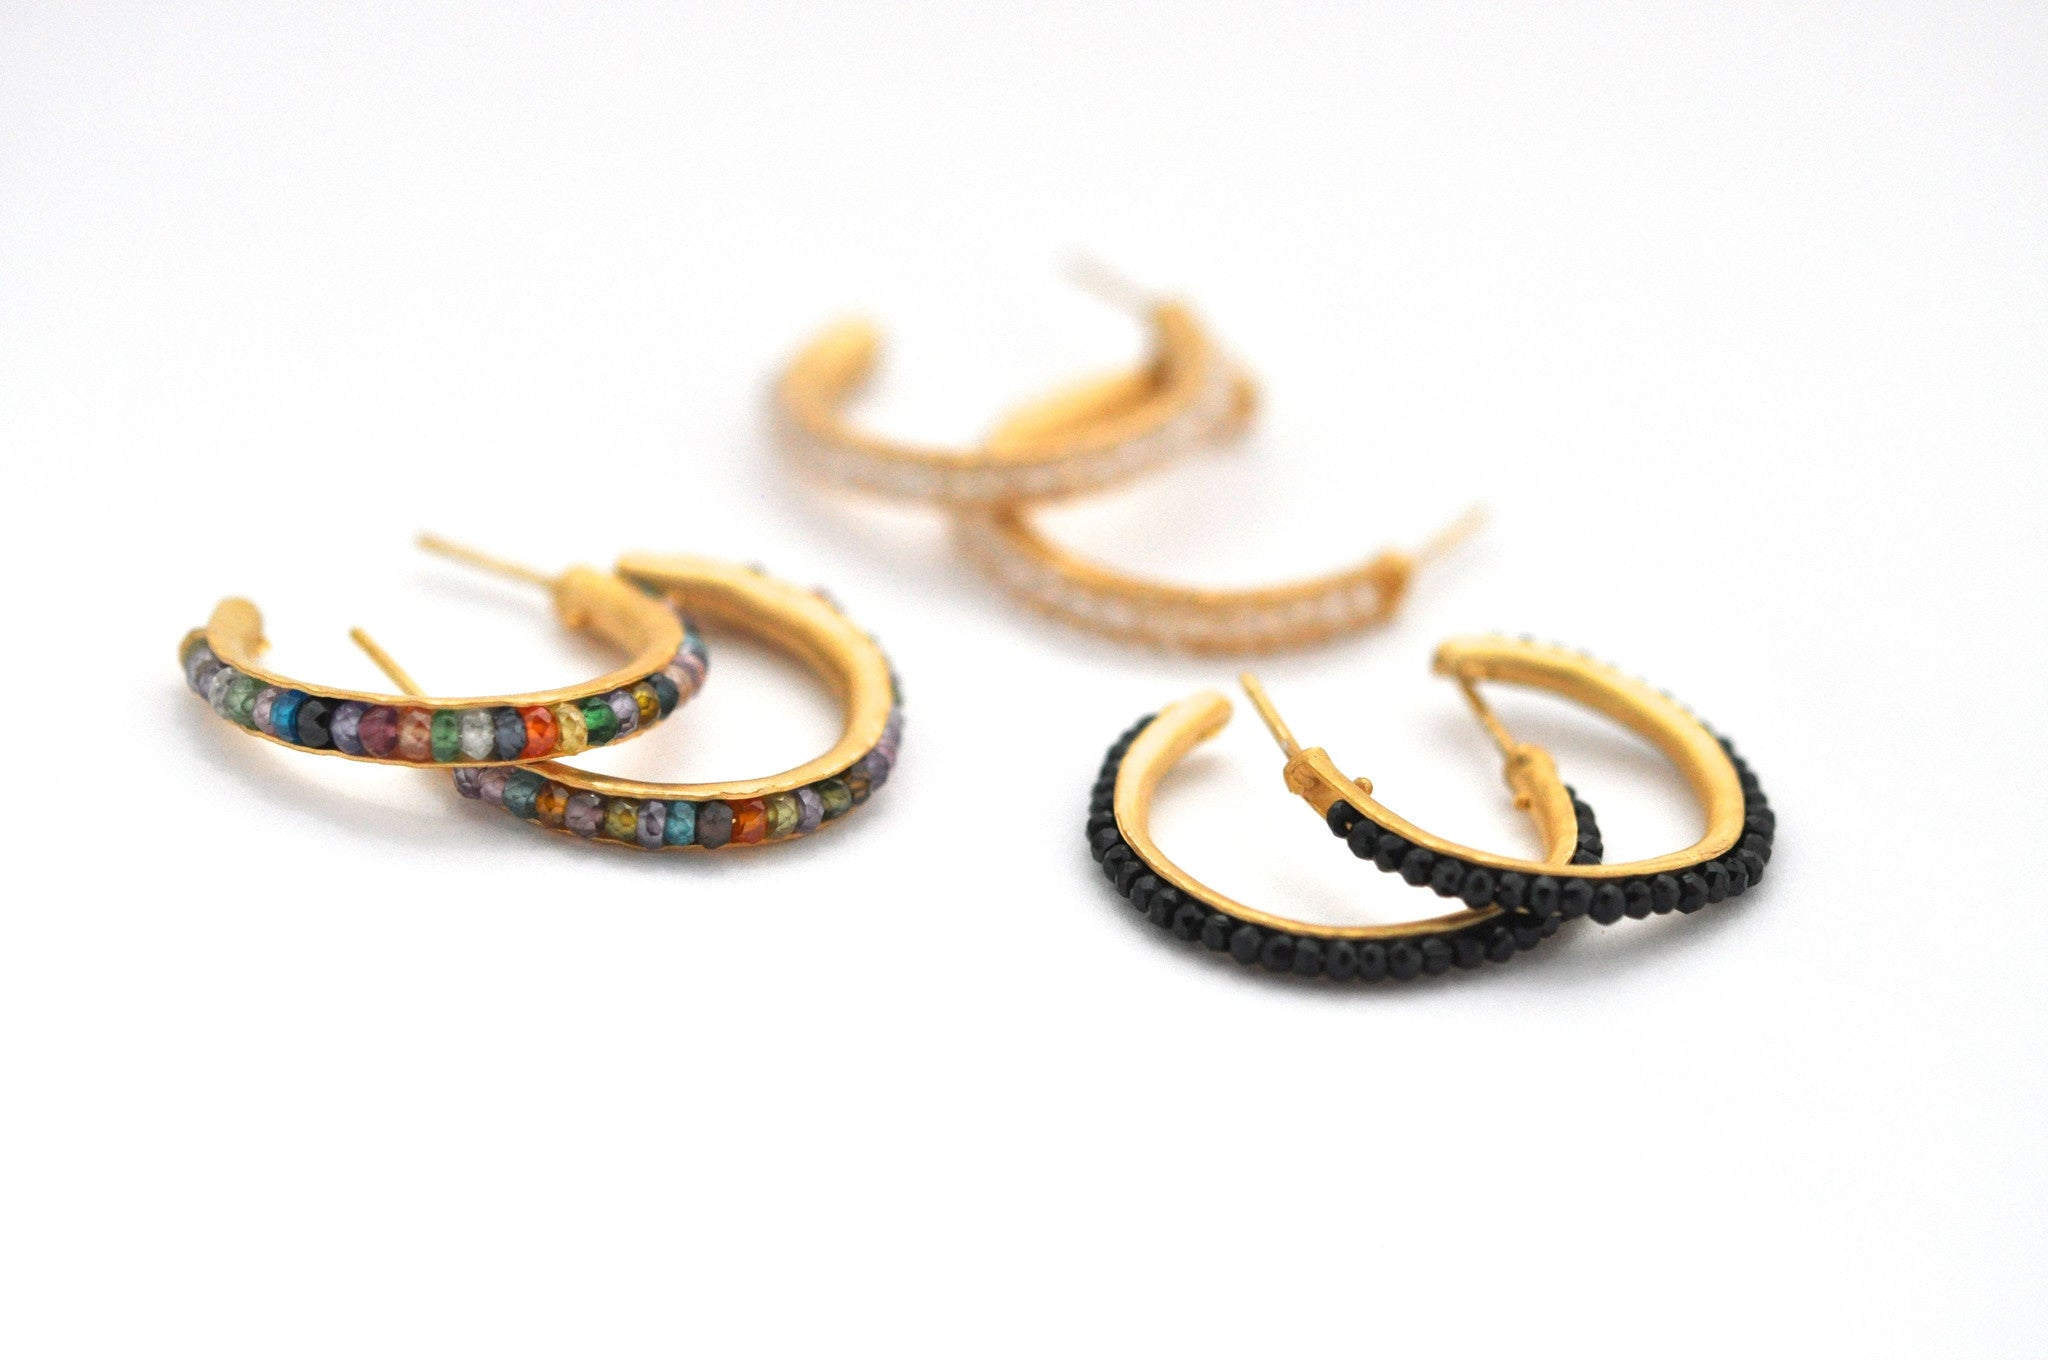 wholesale/earrings/hand forged hoops with tiny gemstones